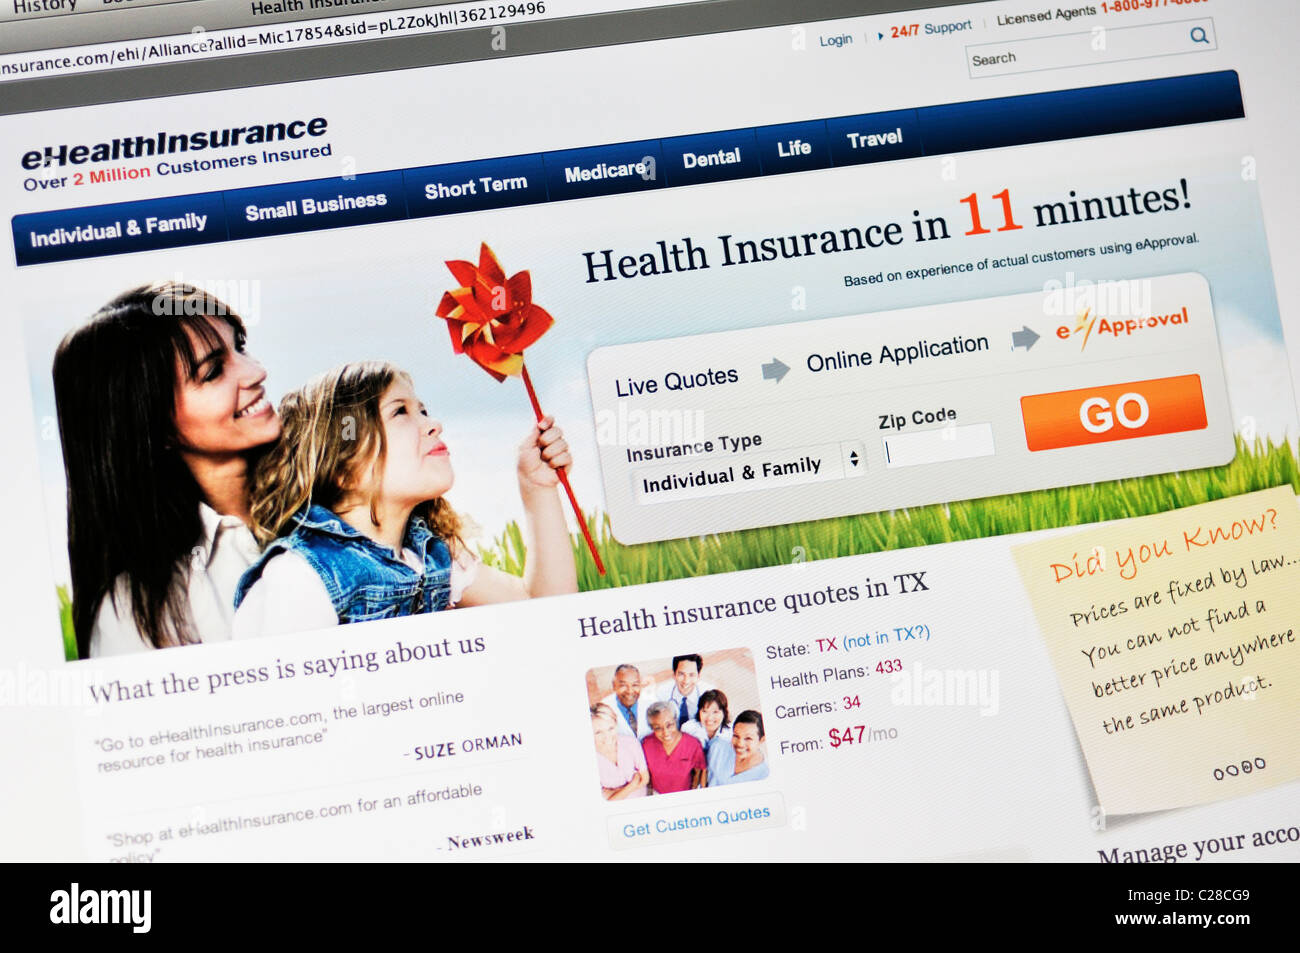 Free Health Insurance Quotes Ehealthinsurance Website  Health Insurance Quotes Stock Photo